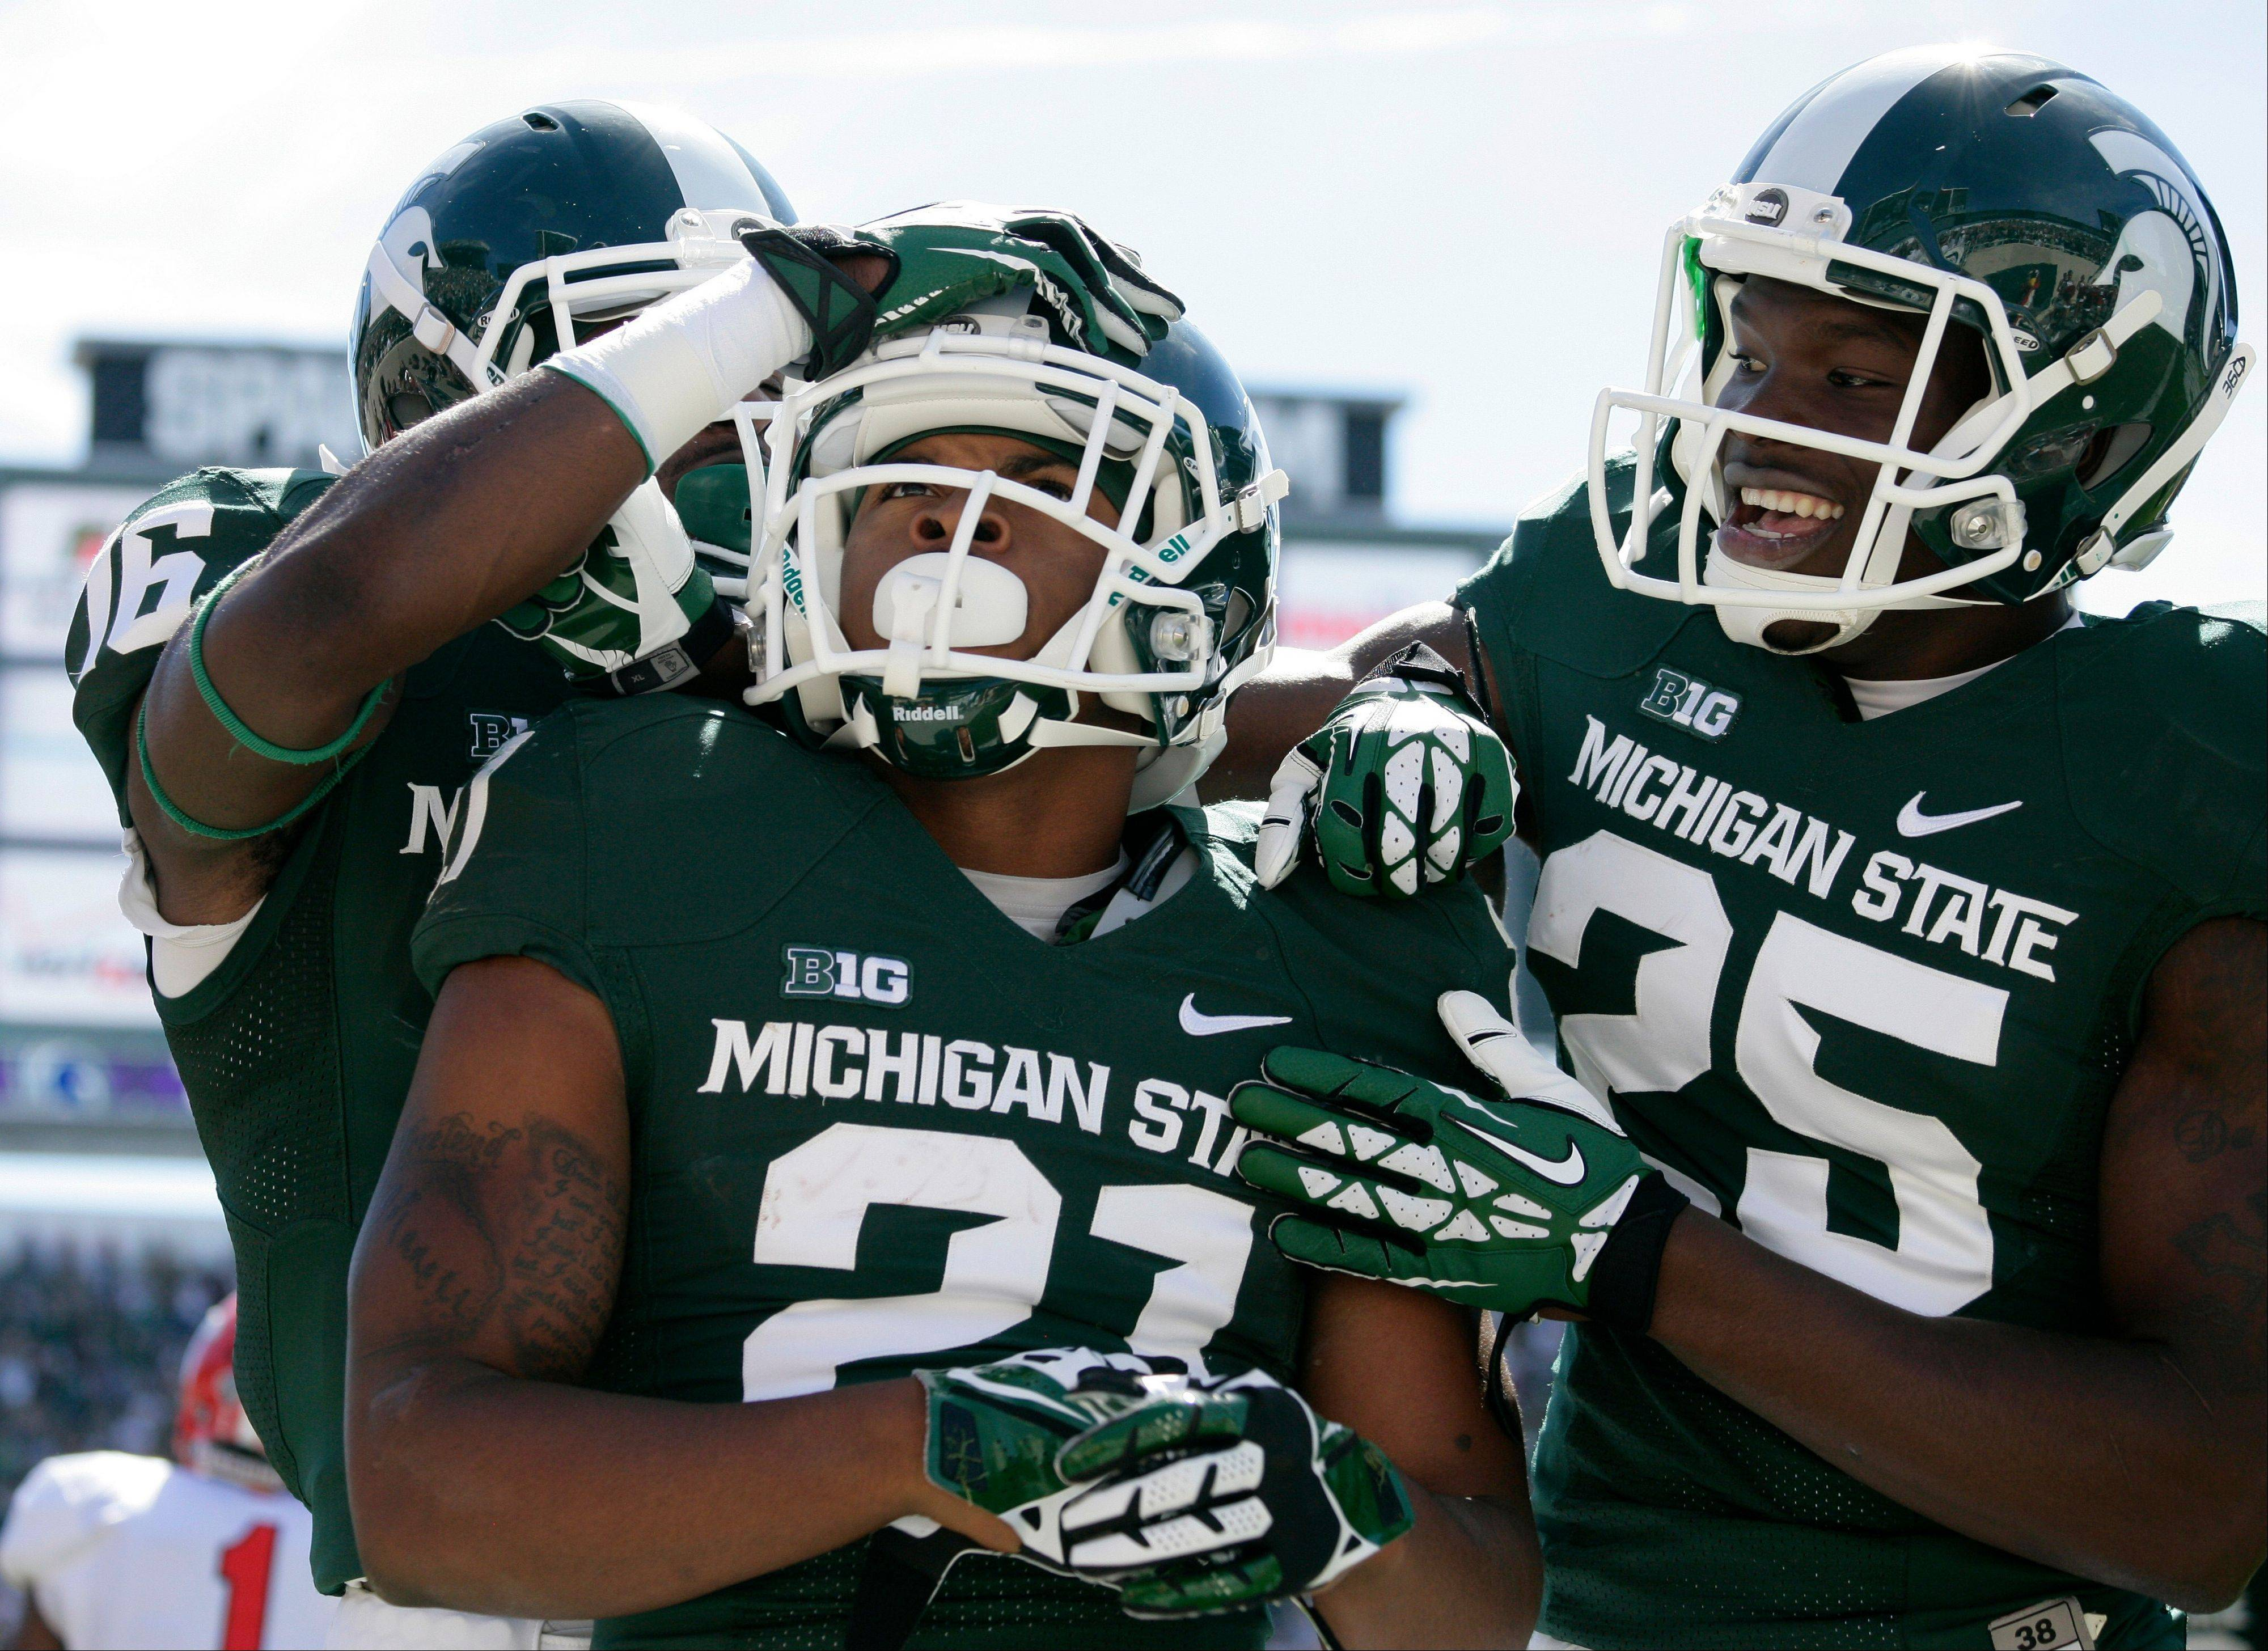 Michigan State receivers Andrew Sims Jr., center, Aaron Burbridge (16) and Keith Mumphery (25) celebrate Sims� touchdown during the first quarter of an NCAA college football game against Youngstown State, Saturday, Sept. 14, 2013, in East Lansing, Mich.